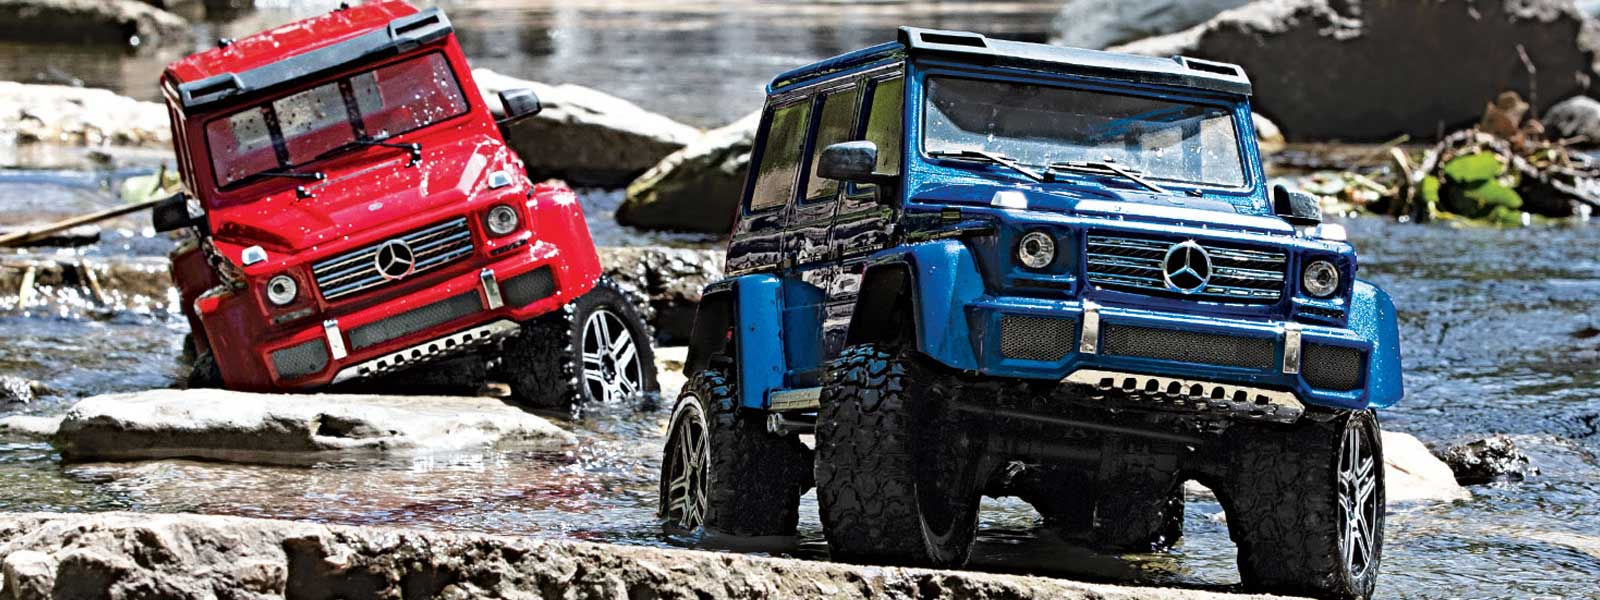 RC Toys, Remote Control Toys, RC Vehicles for Kids & Adults